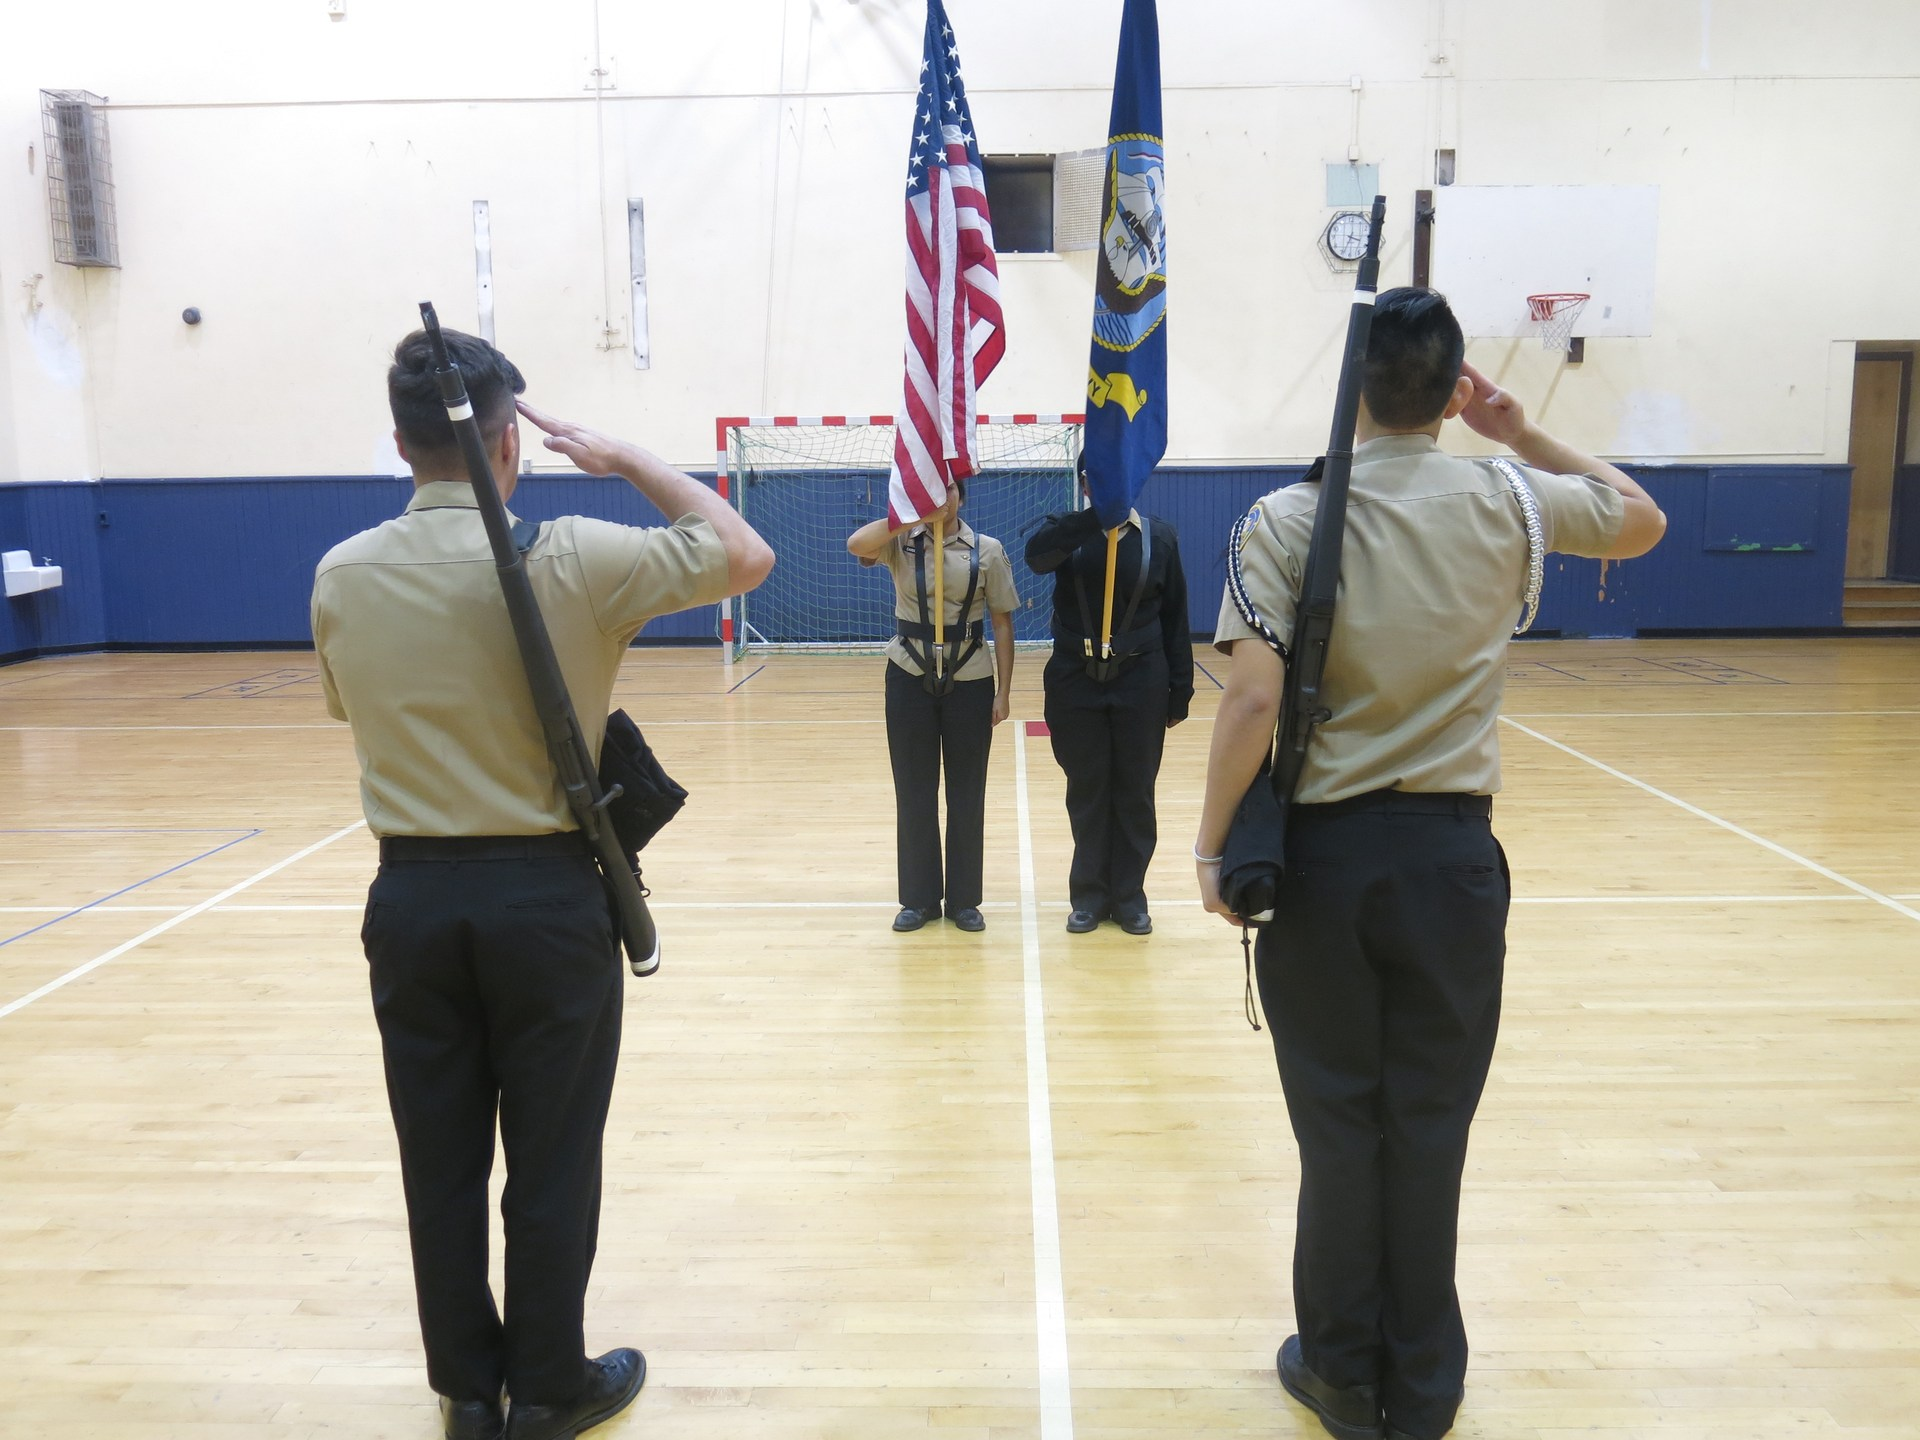 Color Guard competing at a drill competition